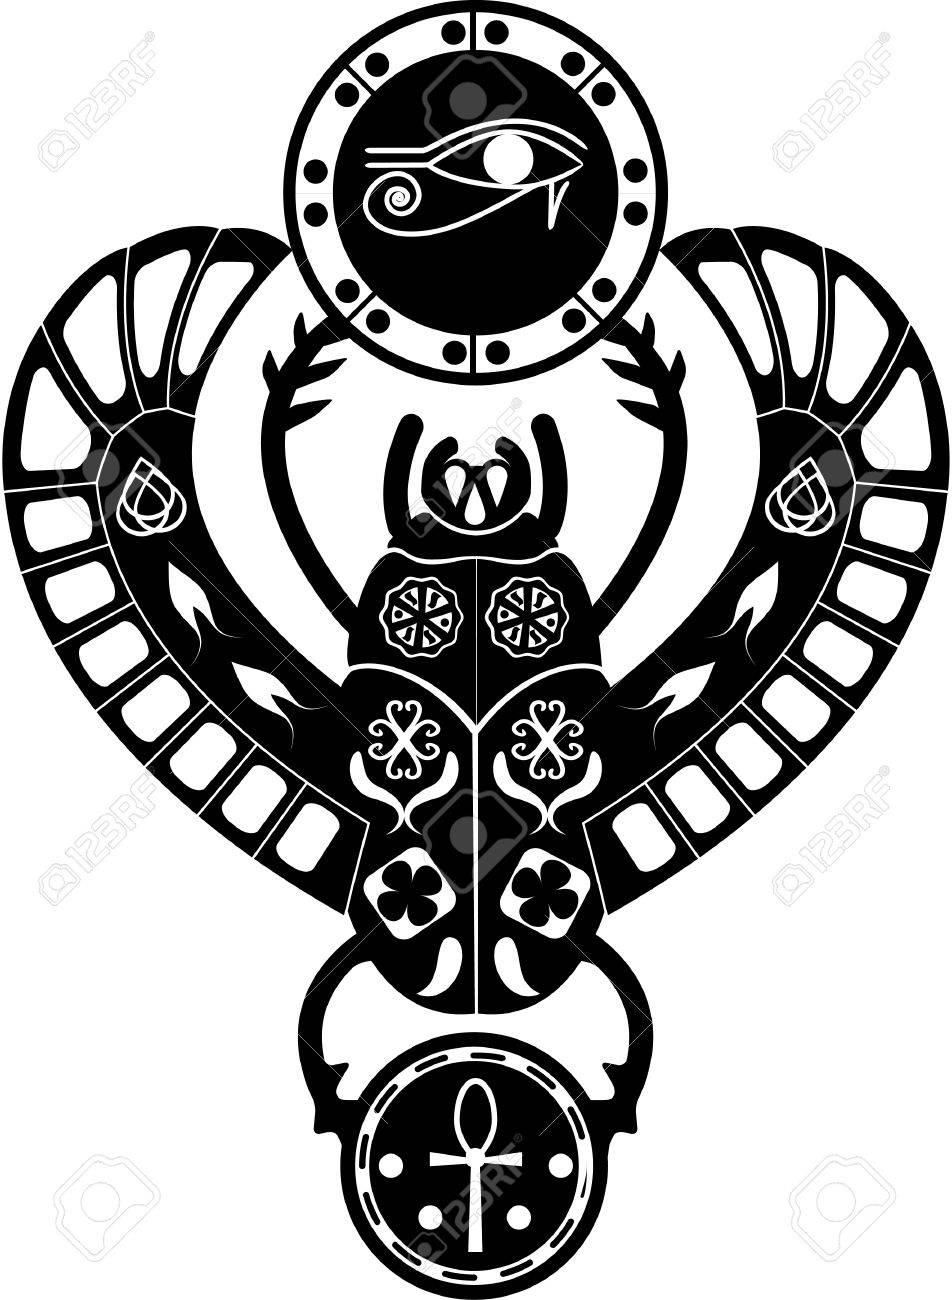 Black and white silueit ancient egyptian symbol amulet black and white silueit ancient egyptian symbol amulet traditional religious scarab beetle with patterns buycottarizona